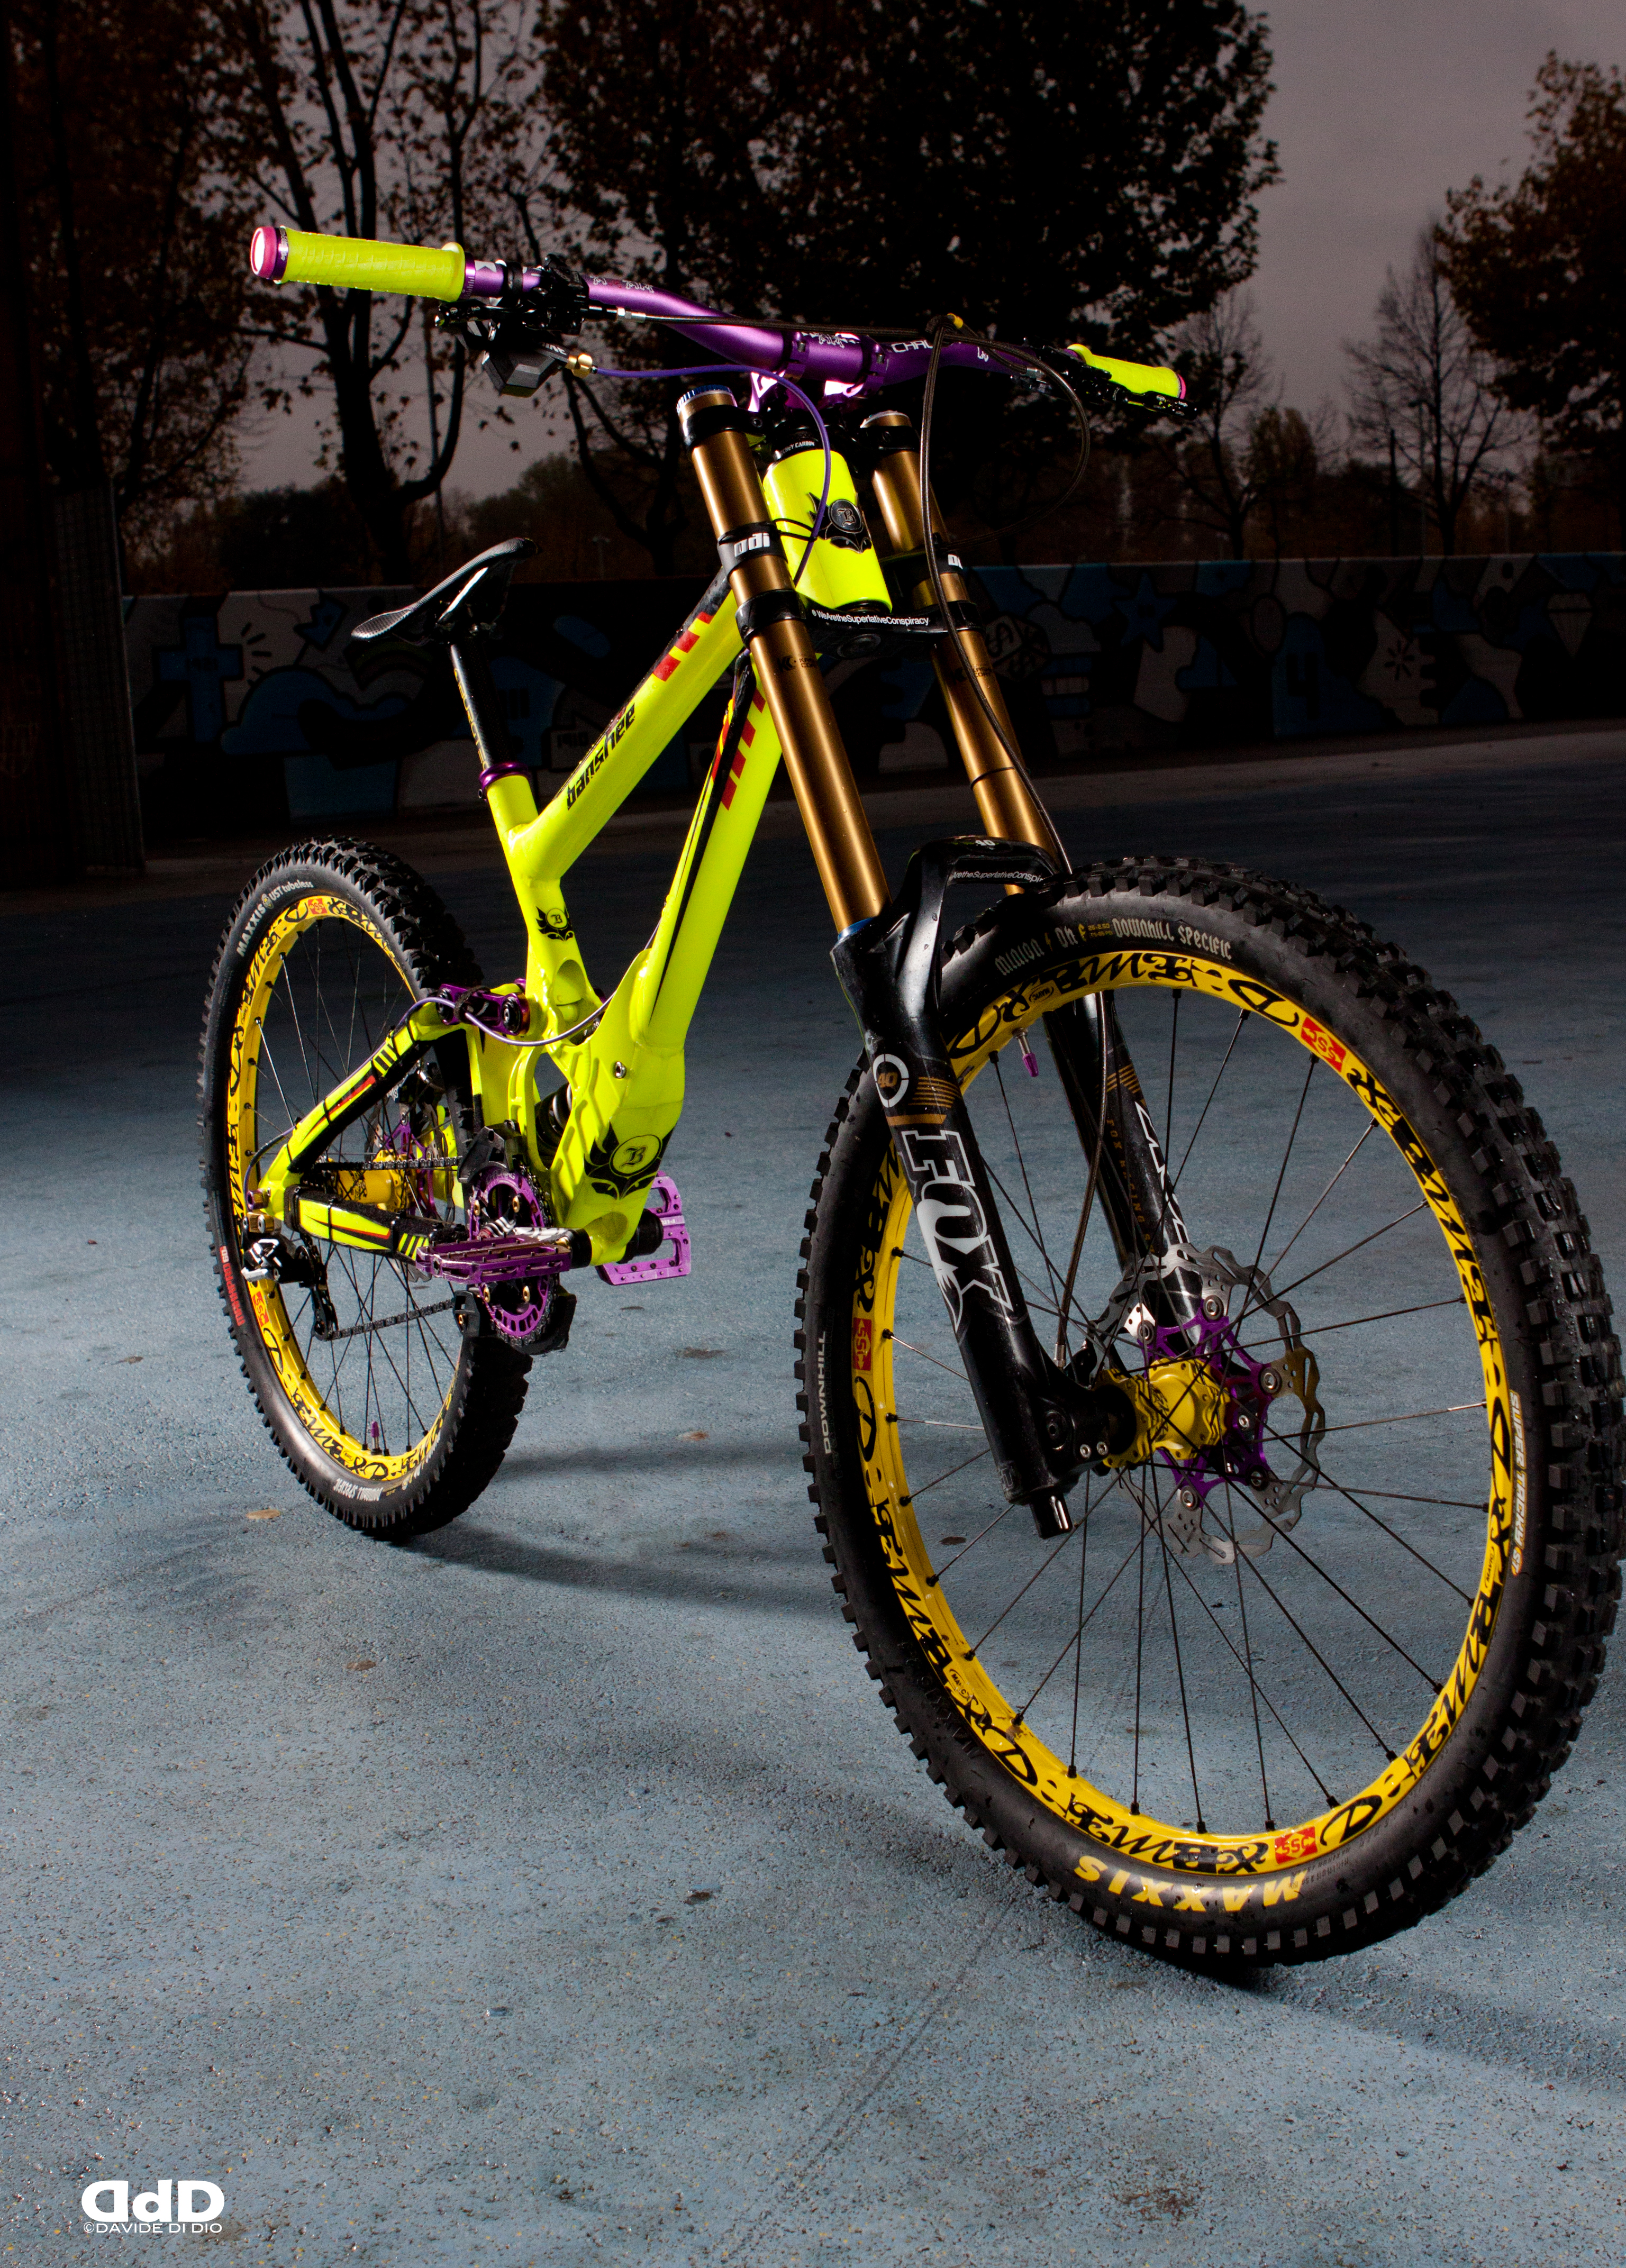 Banshee Legend Mkii 2013 Fluo Purple Marci0 S Bike Check